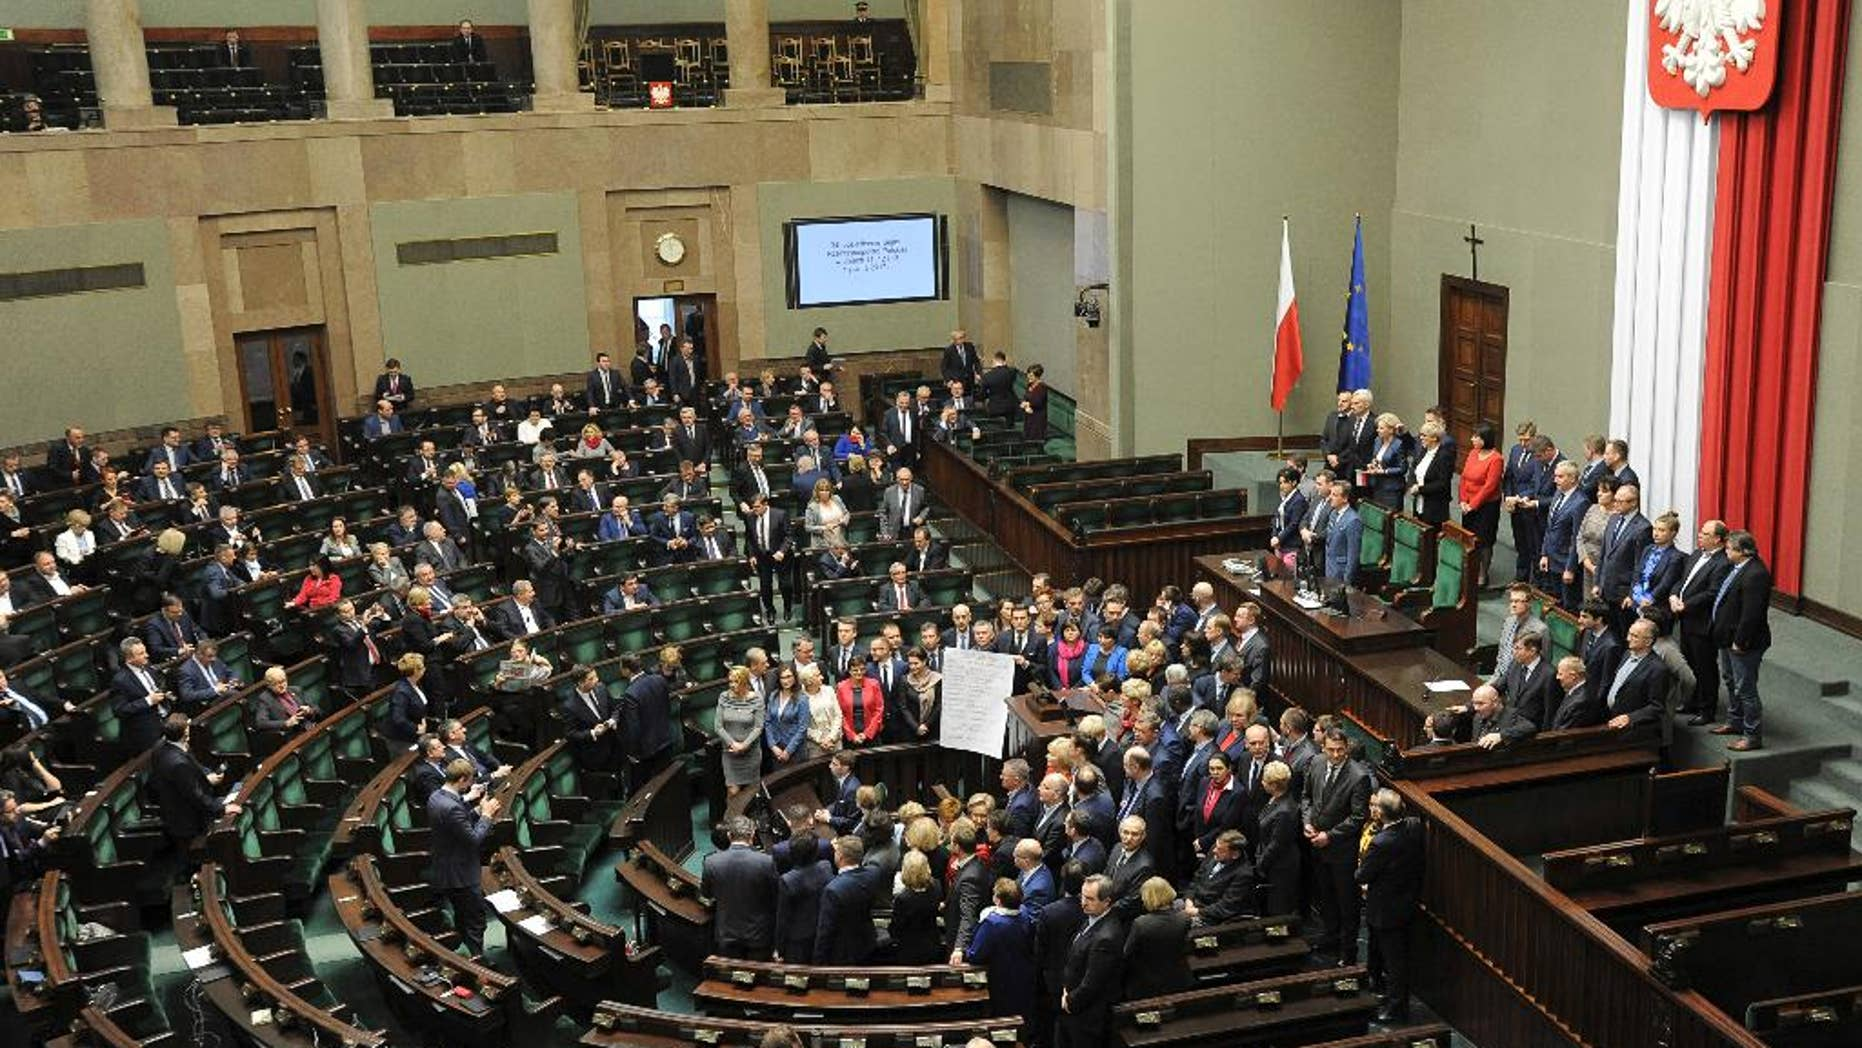 A general view of the parliament session hall as opposition lawmakers gather around the podium with a list of ten freedoms that they say are violated by the ruling party, as they end their protest, in Warsaw, Poland, Thursday, Jan. 12, 2017. Opposition parties blocked the session hall since Dec. 16 to protest a budget that according to them was passed illegally. (AP Photo/Alik Keplicz)